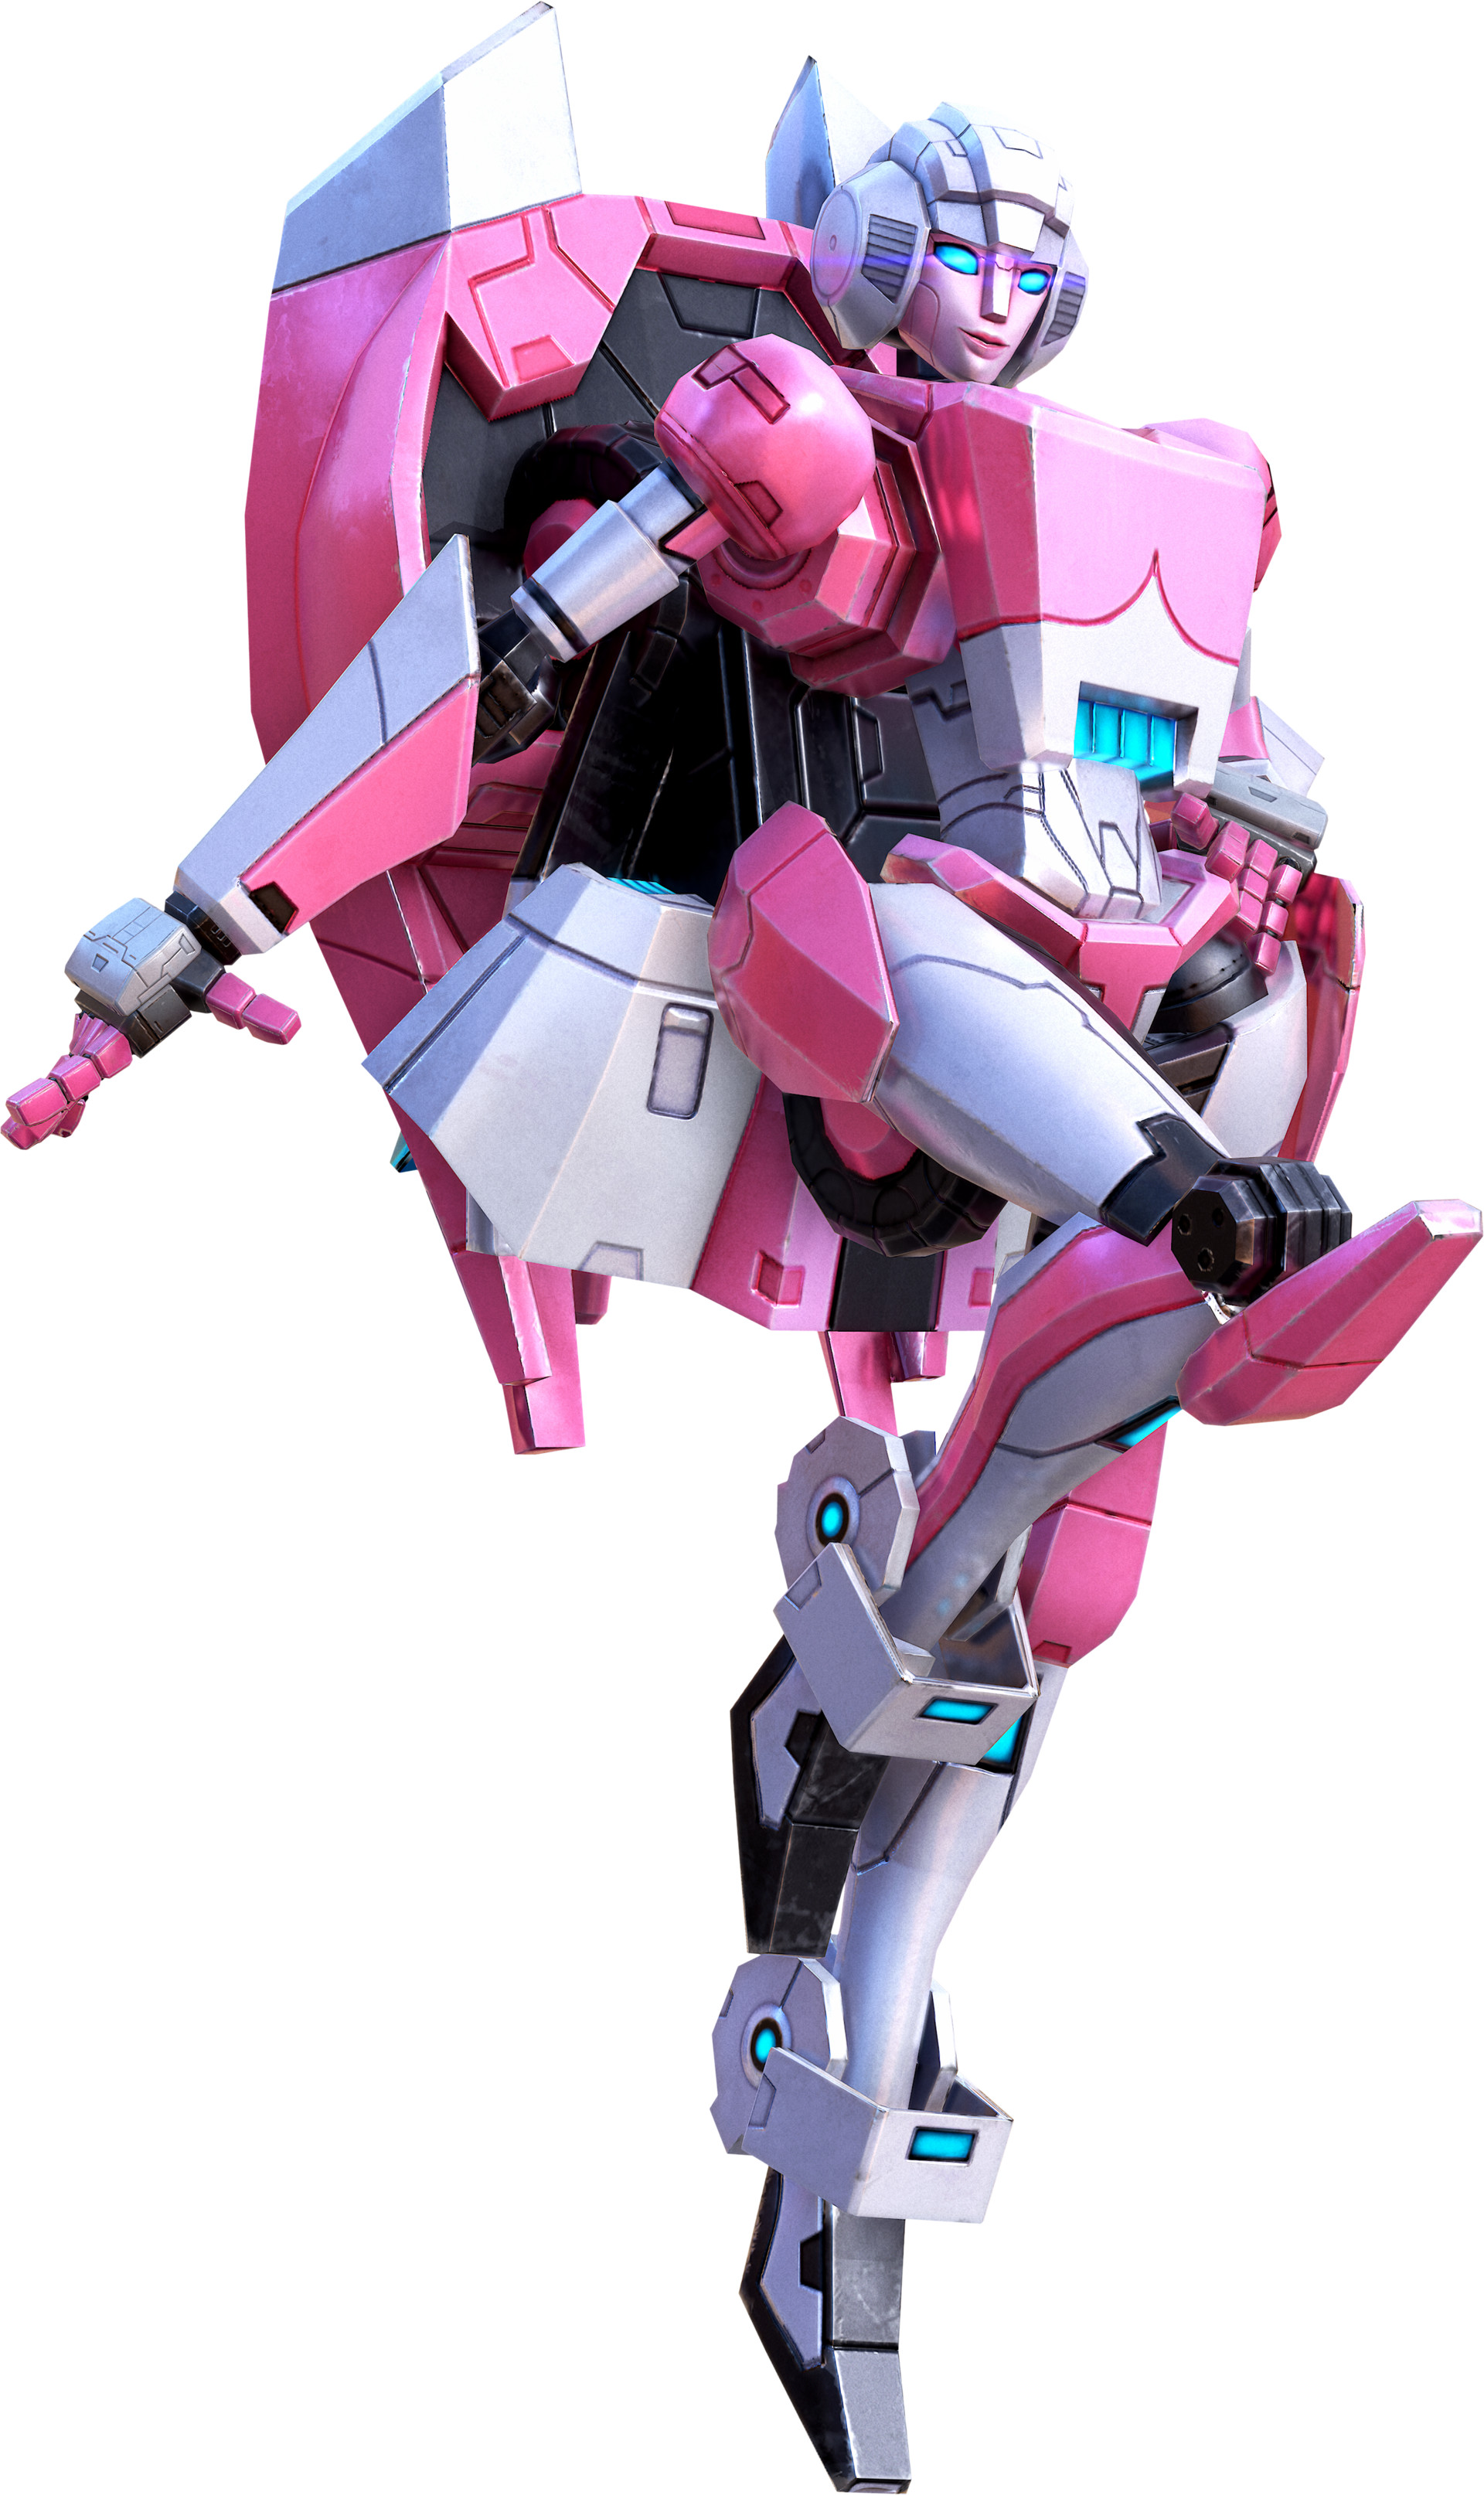 ArtStation - Transformers Earth Wars, Arcee, Andrew Johnston